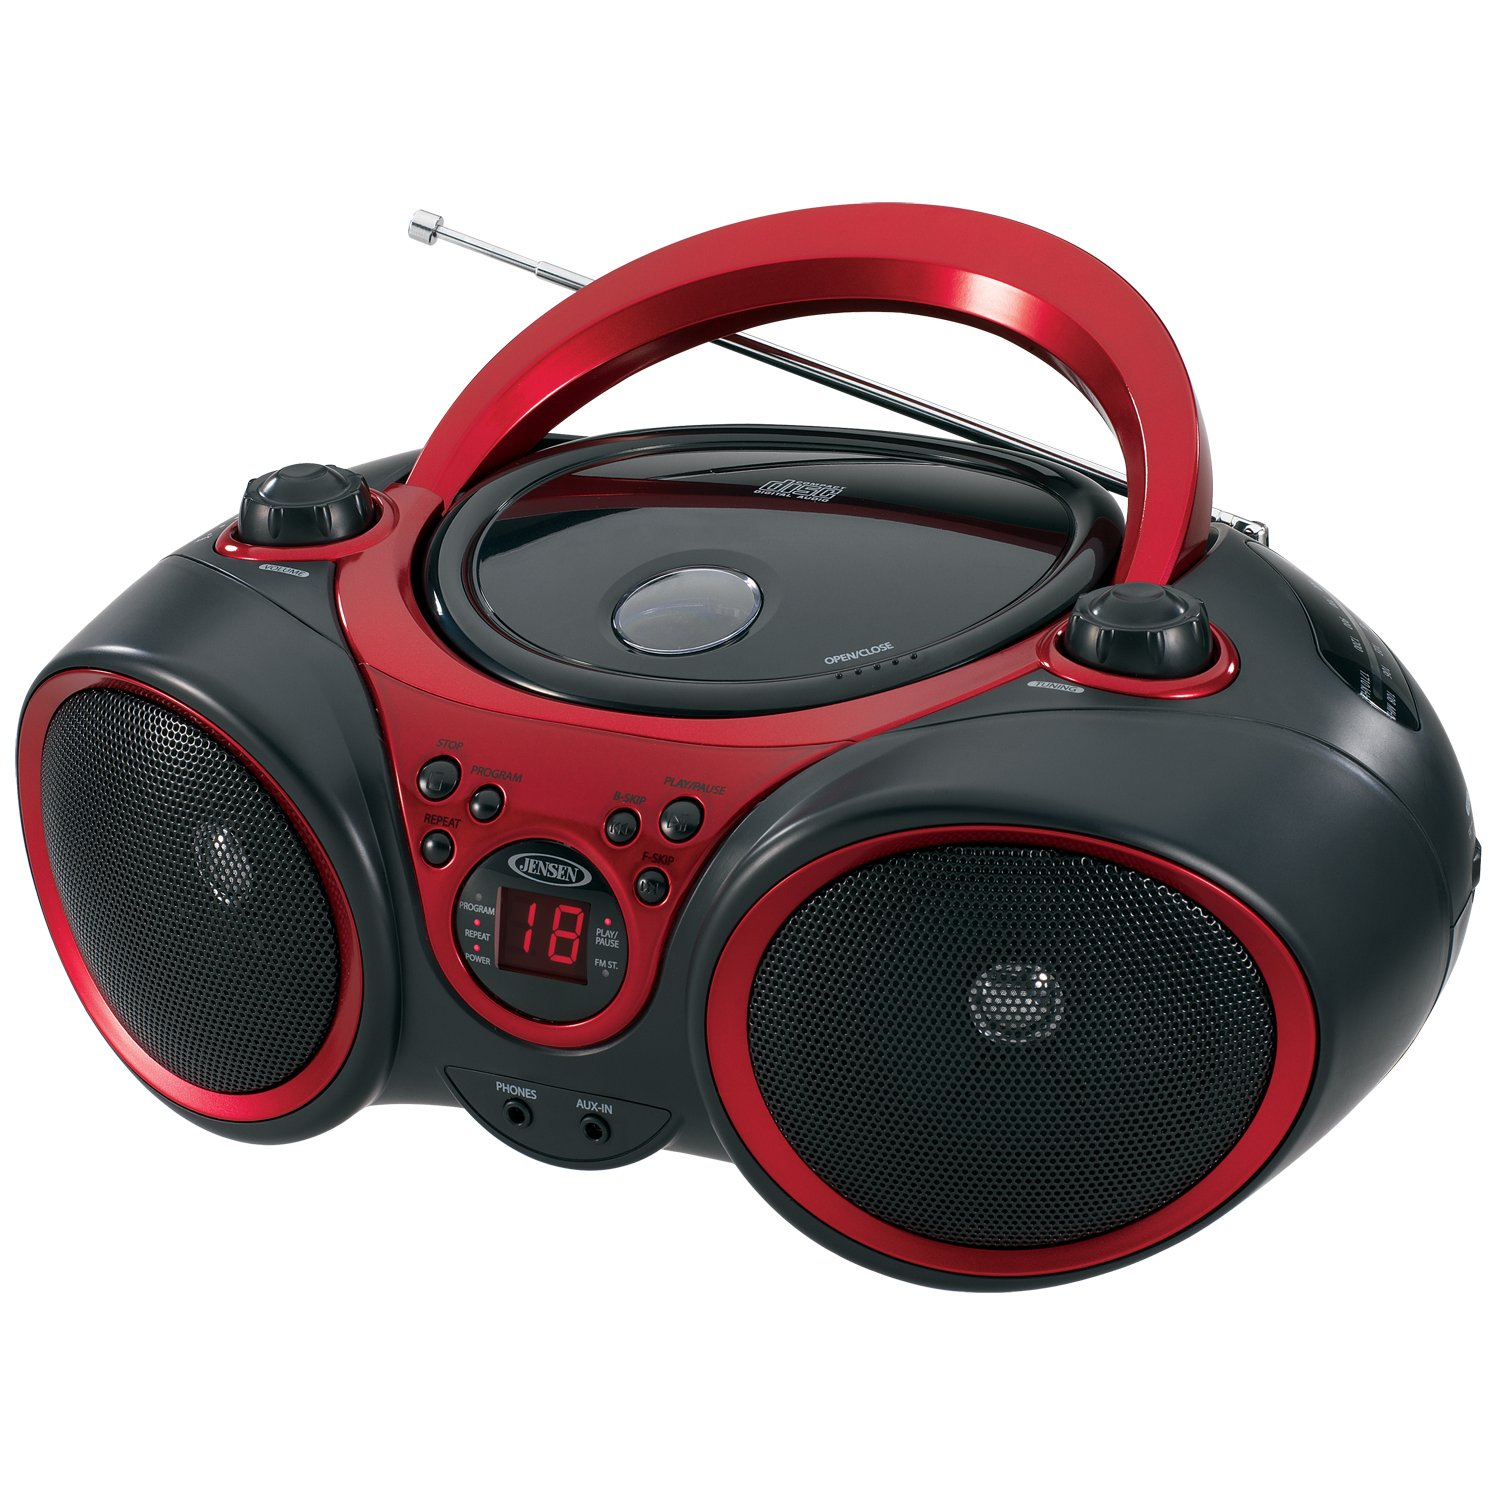 Superior Amazon.com: Jensen CD 490 Sport Stereo CD Player With AM/FM Radio And Aux  Line In, Red And Black: Home Audio U0026 Theater